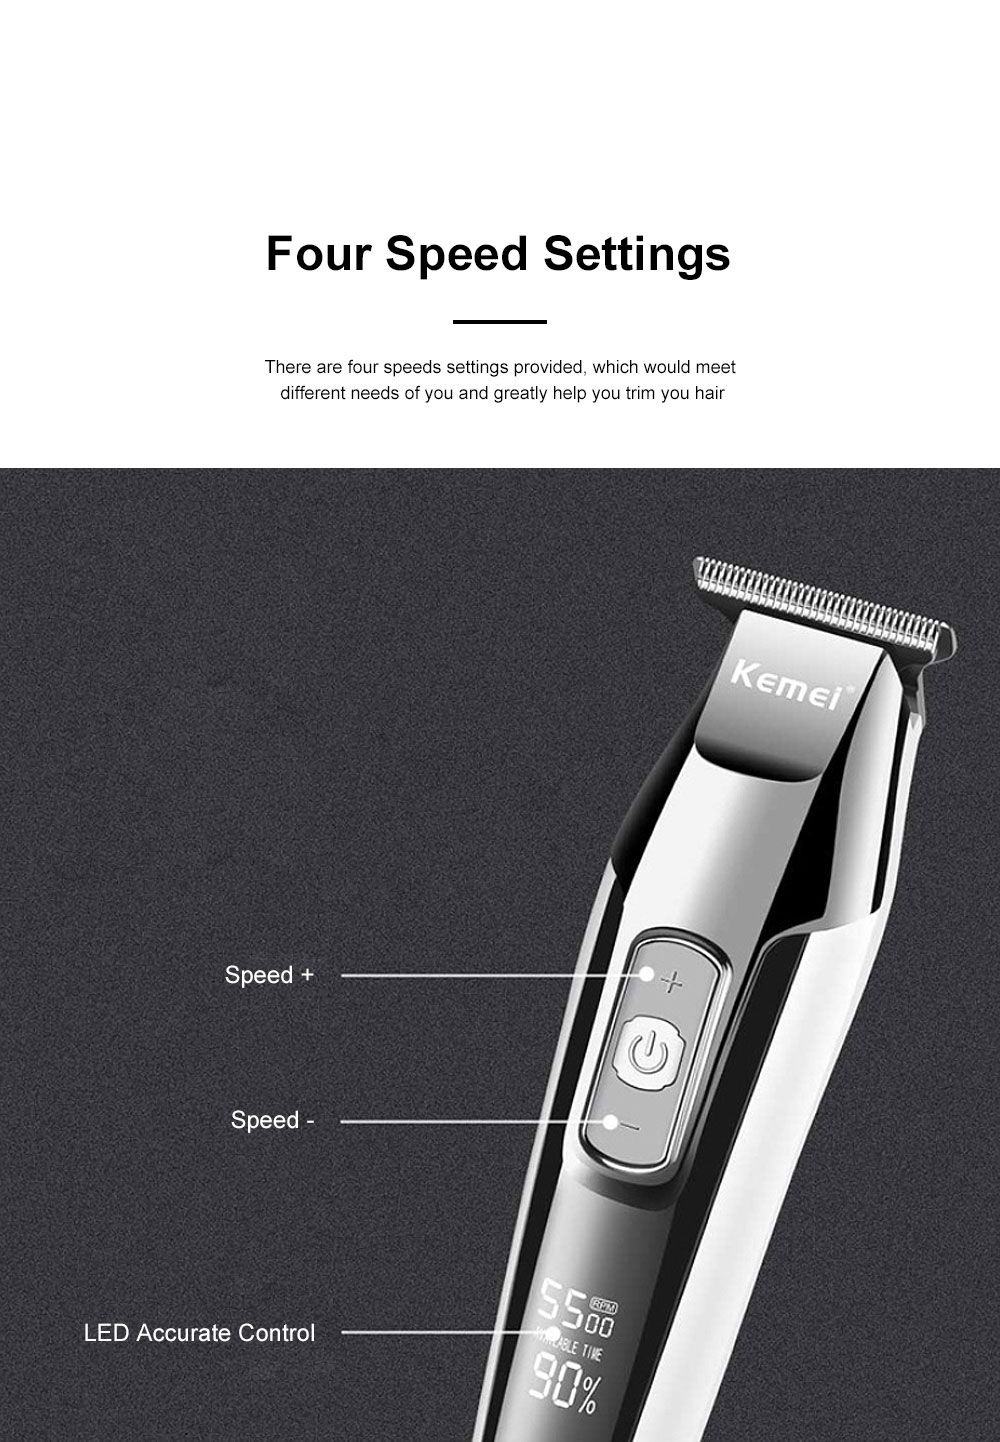 Handy Functional Quick-charge Hair Clipper Graver Braehead Hair Cutting Tool Household Trimming Machine with Liquid Crystal Display Screen 2